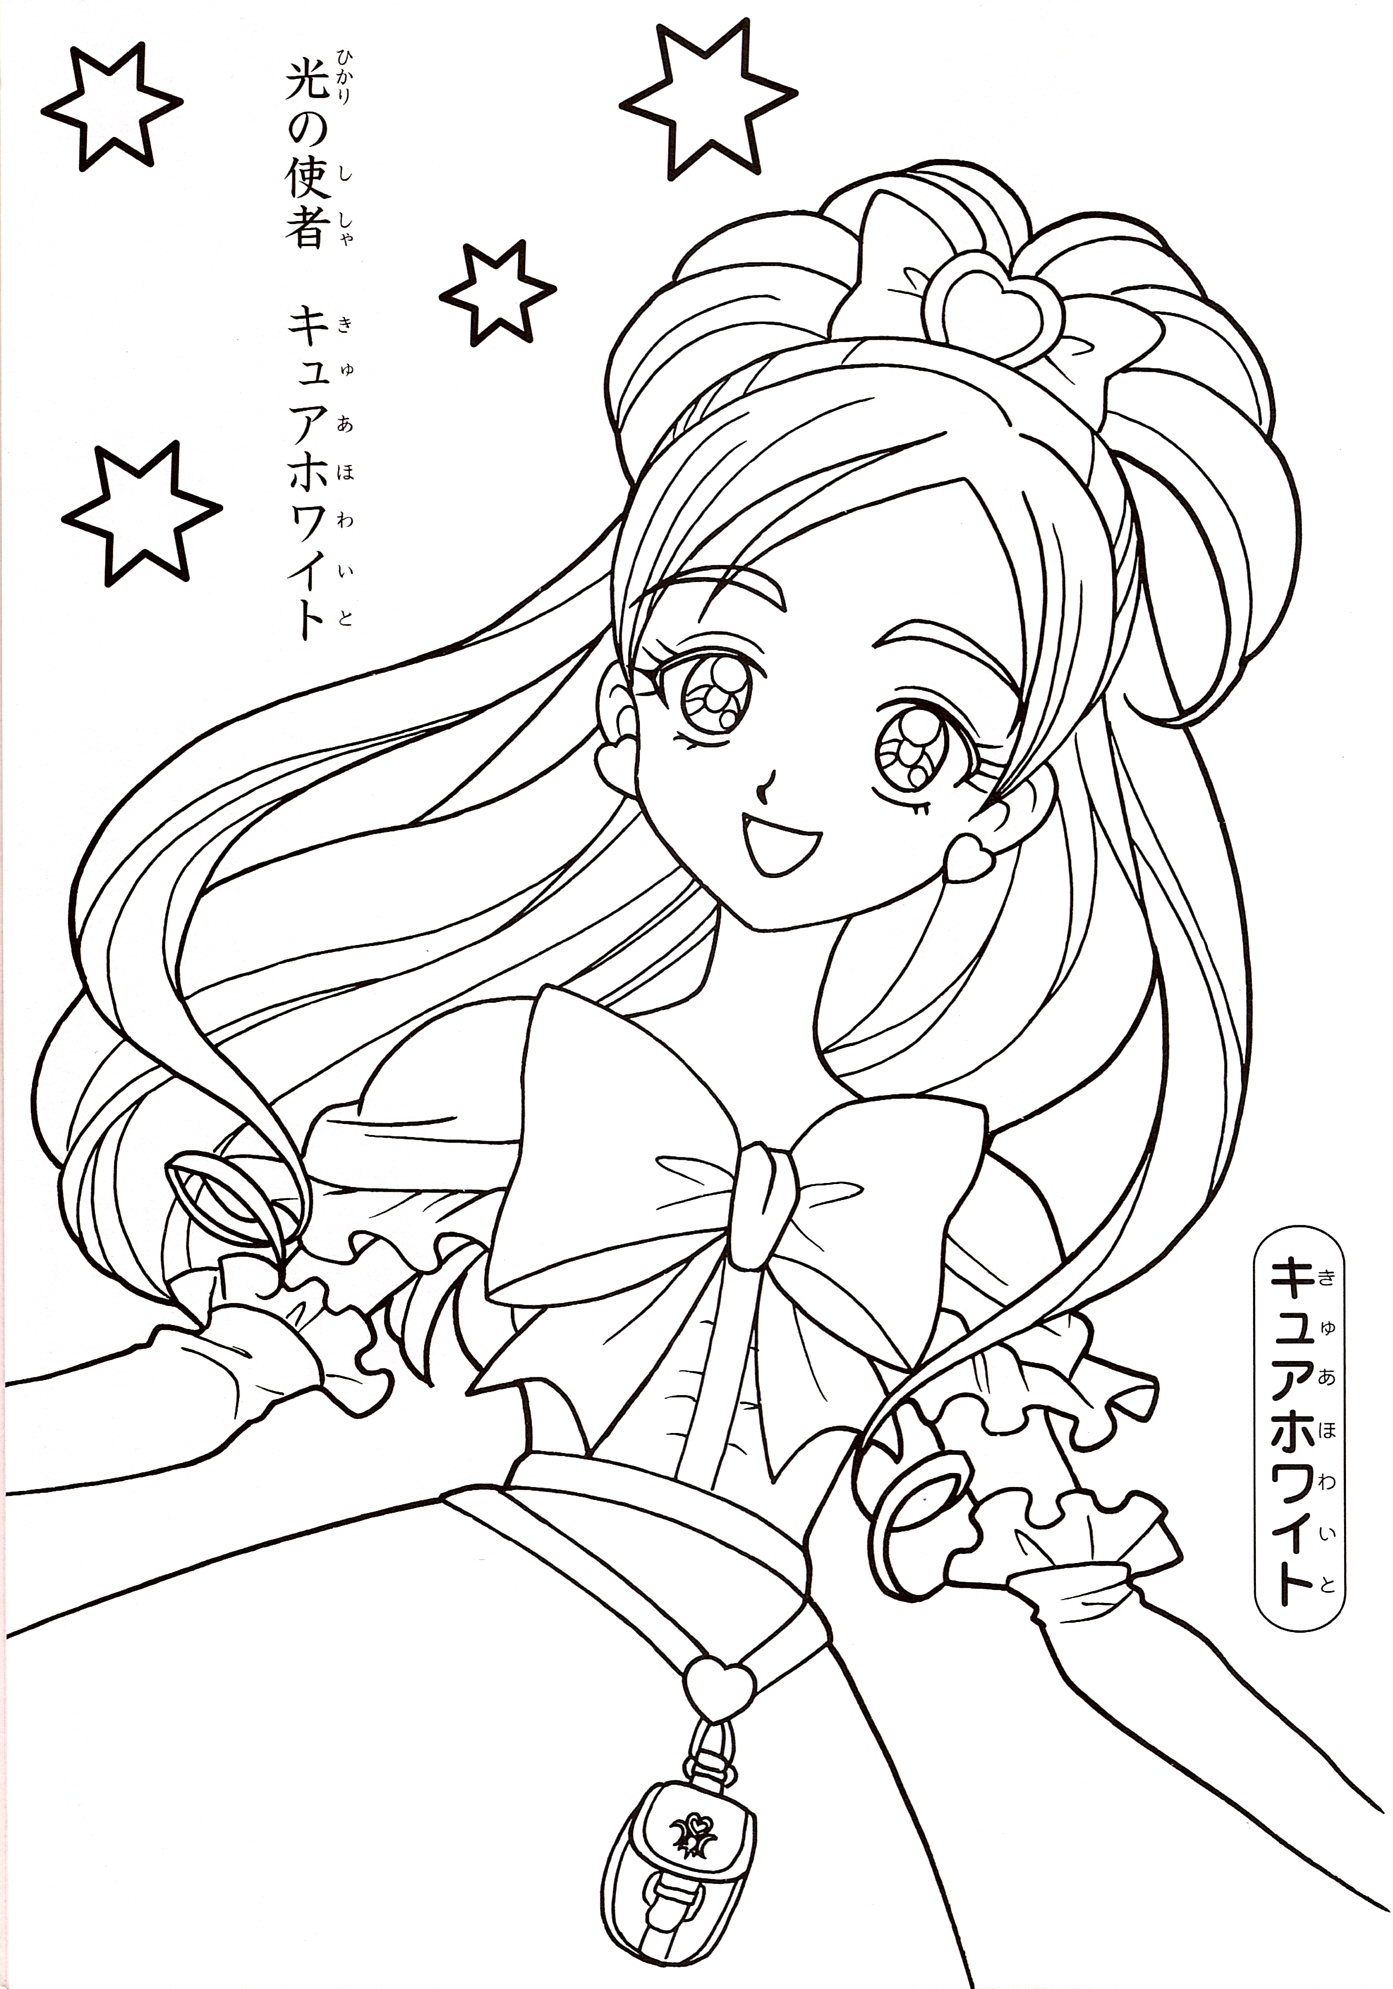 Pretty Cure Coloring Pages : ぬりえ 子供 : 子供